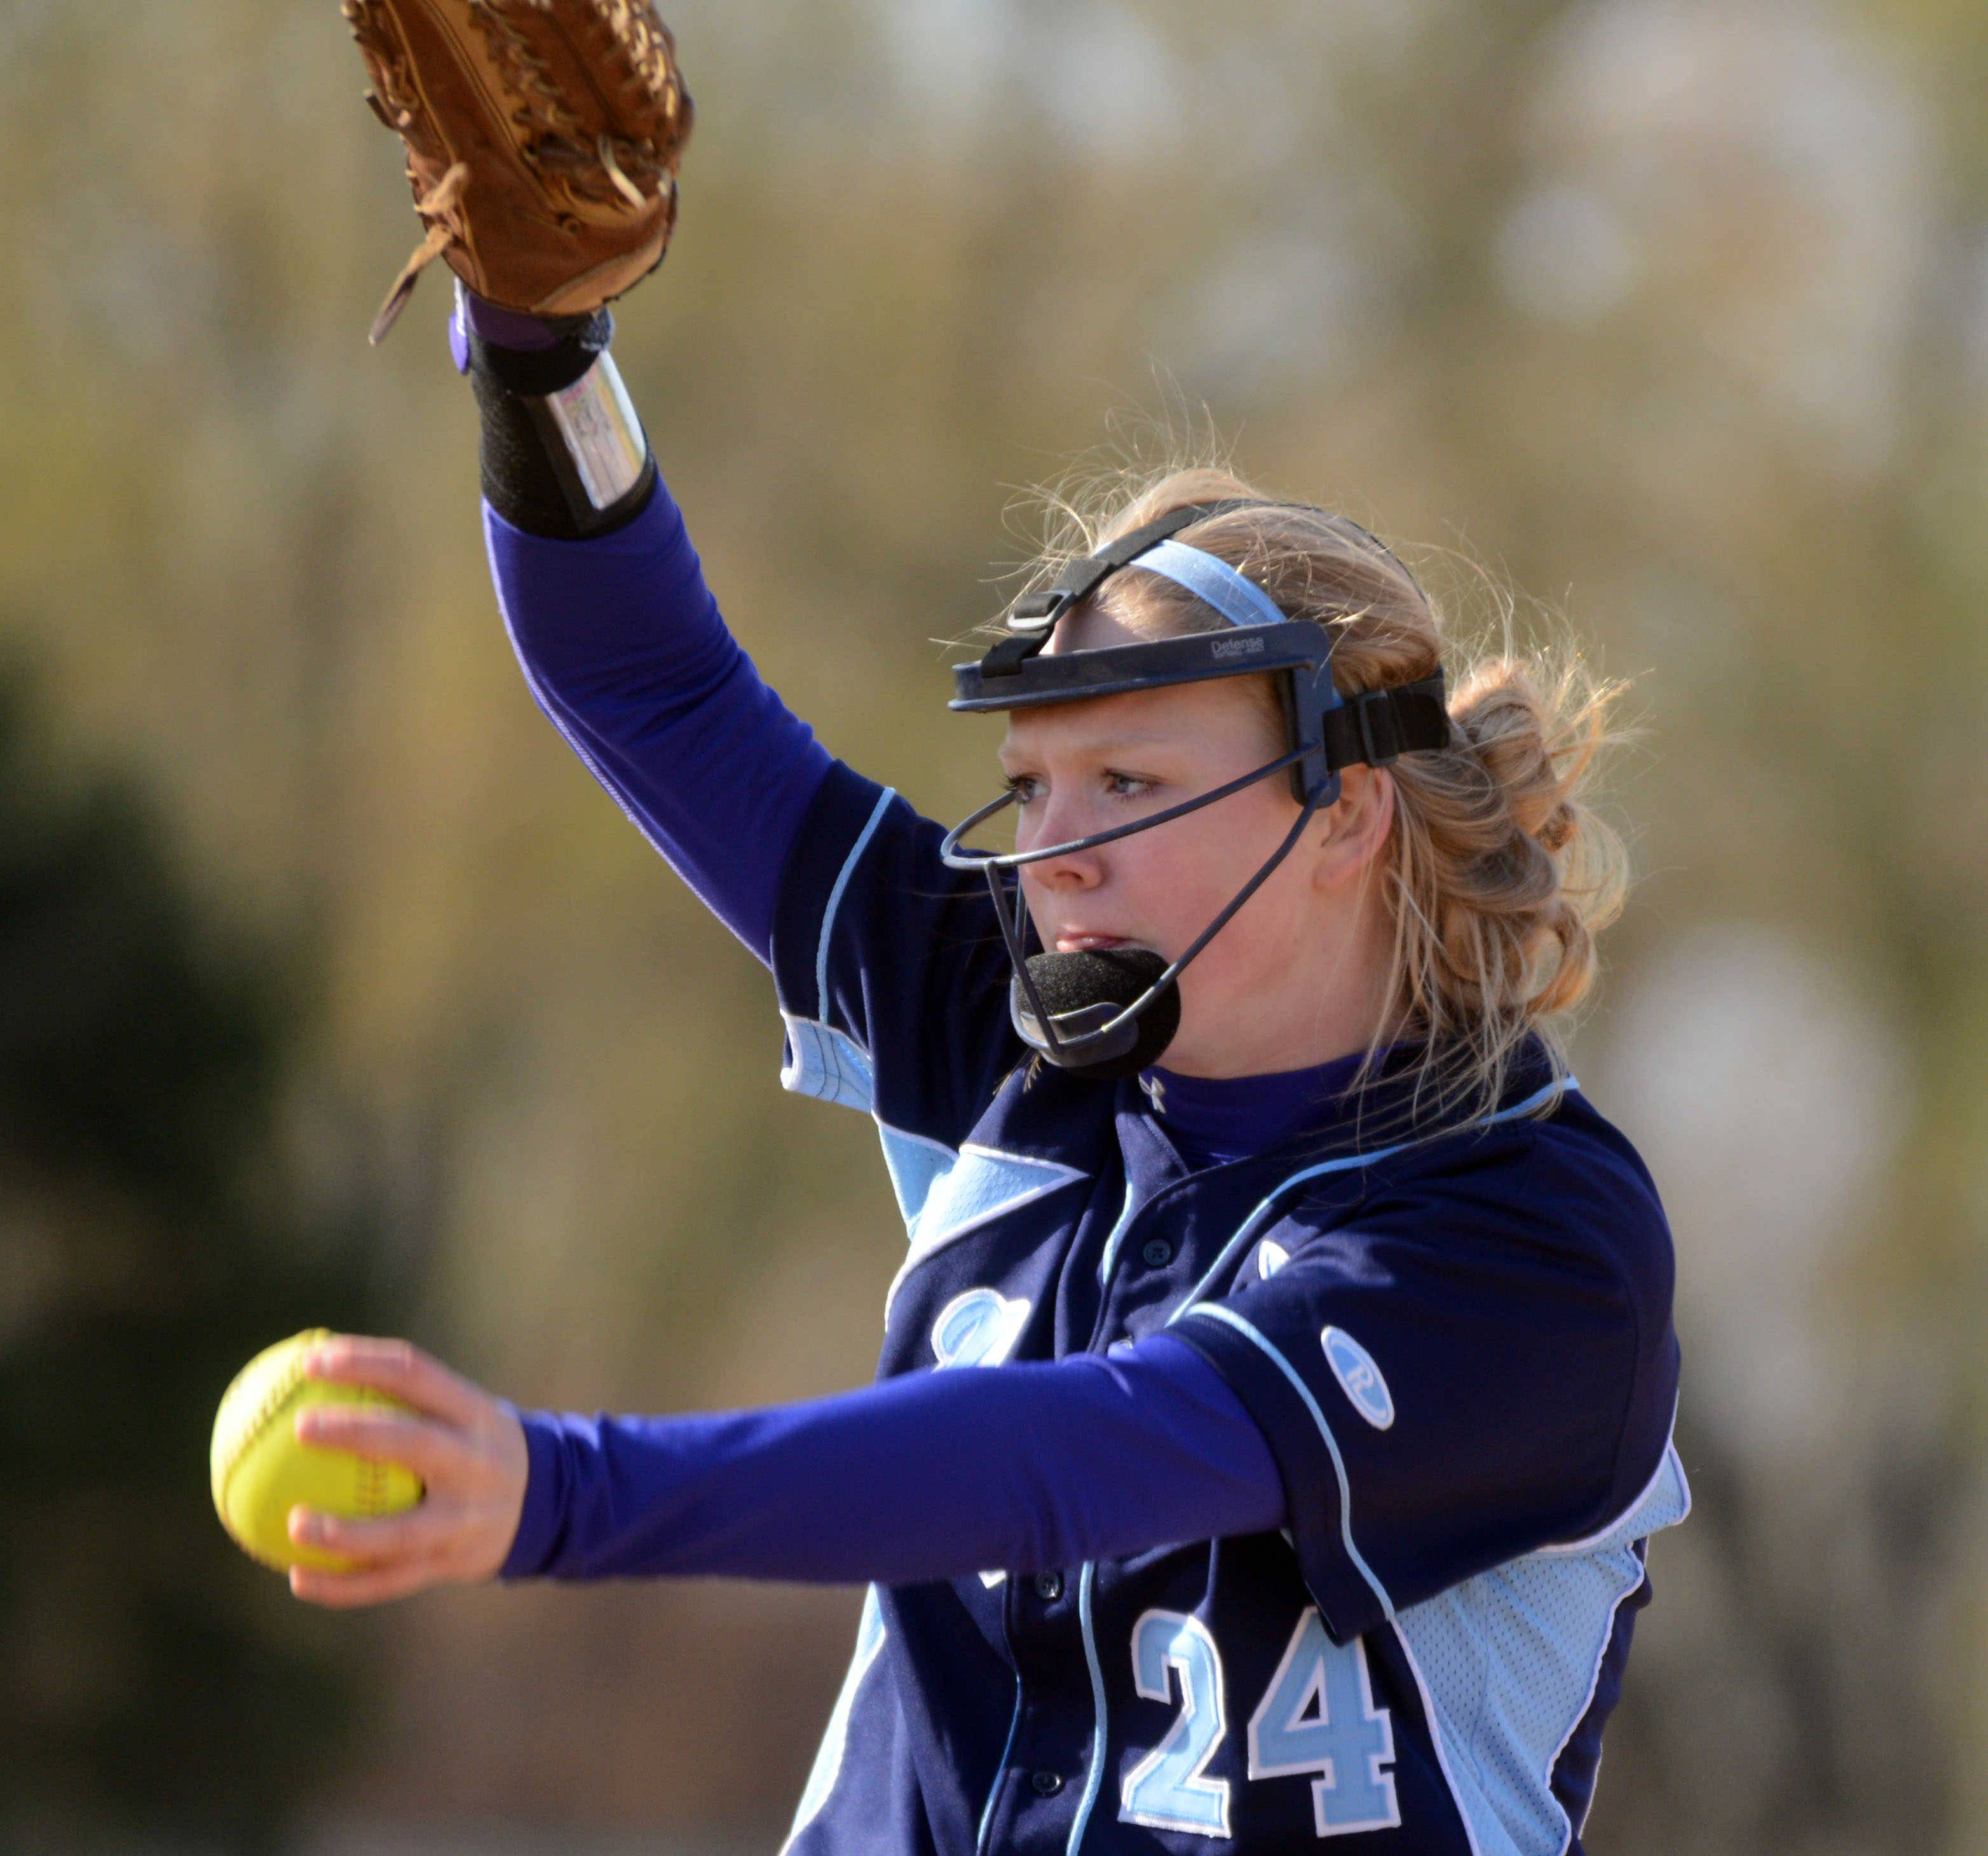 Prospect hurler Delilah Malczewski delivers against Conant on Monday.